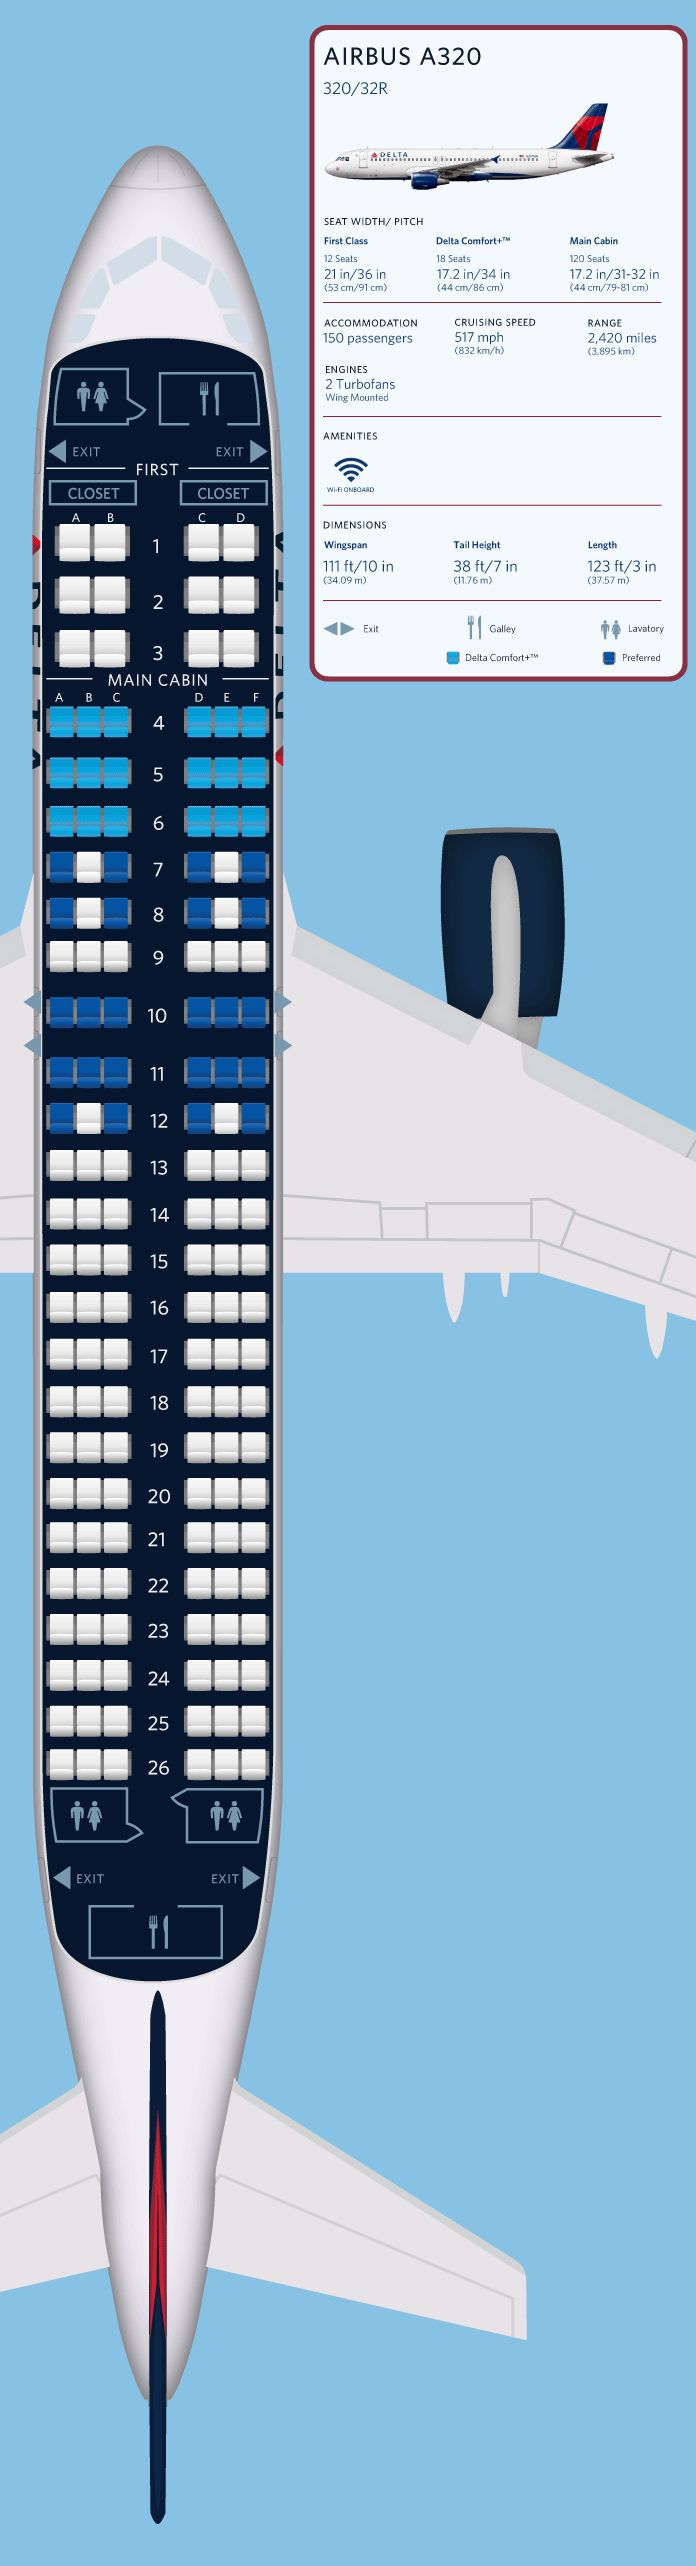 65 Best Images About Airline Seat Plans On Pinterest